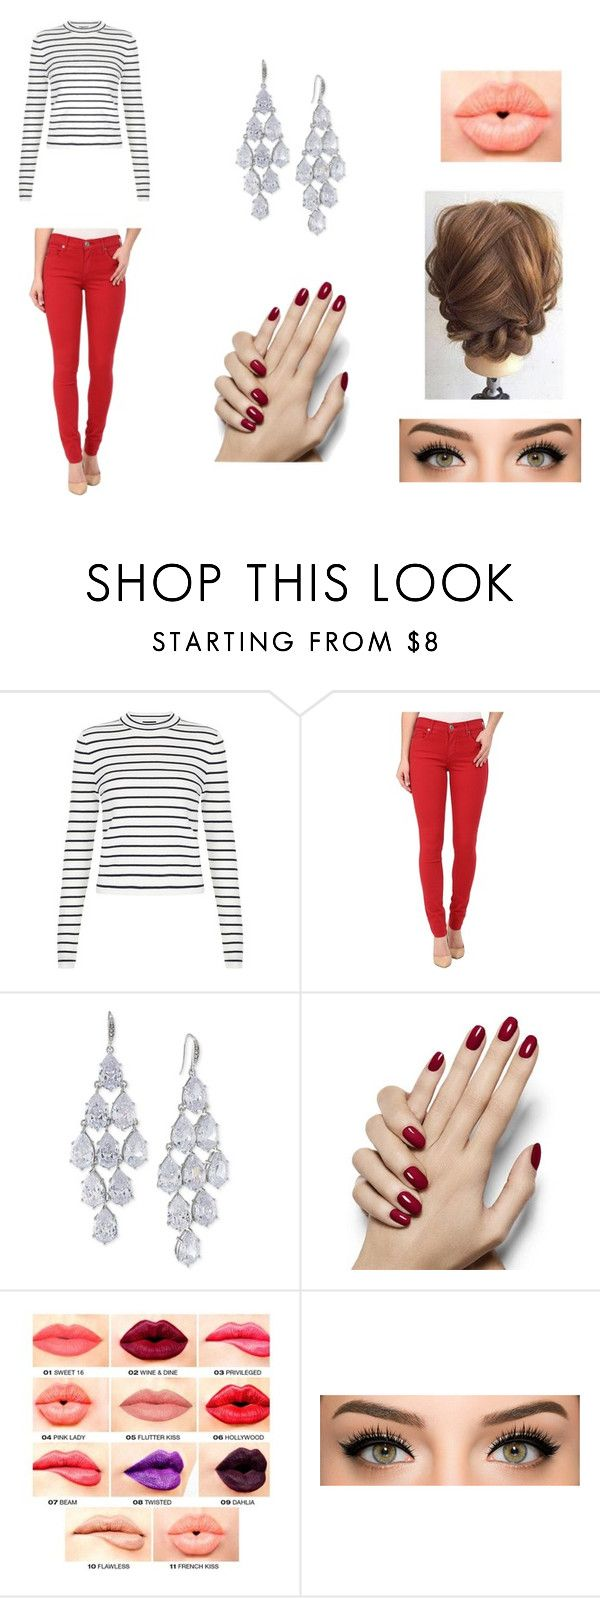 """#CasualFriday"" by laramie8142001 ❤ liked on Polyvore featuring True Religion, Carolee, NYX, women's clothing, women, female, woman, misses and juniors"